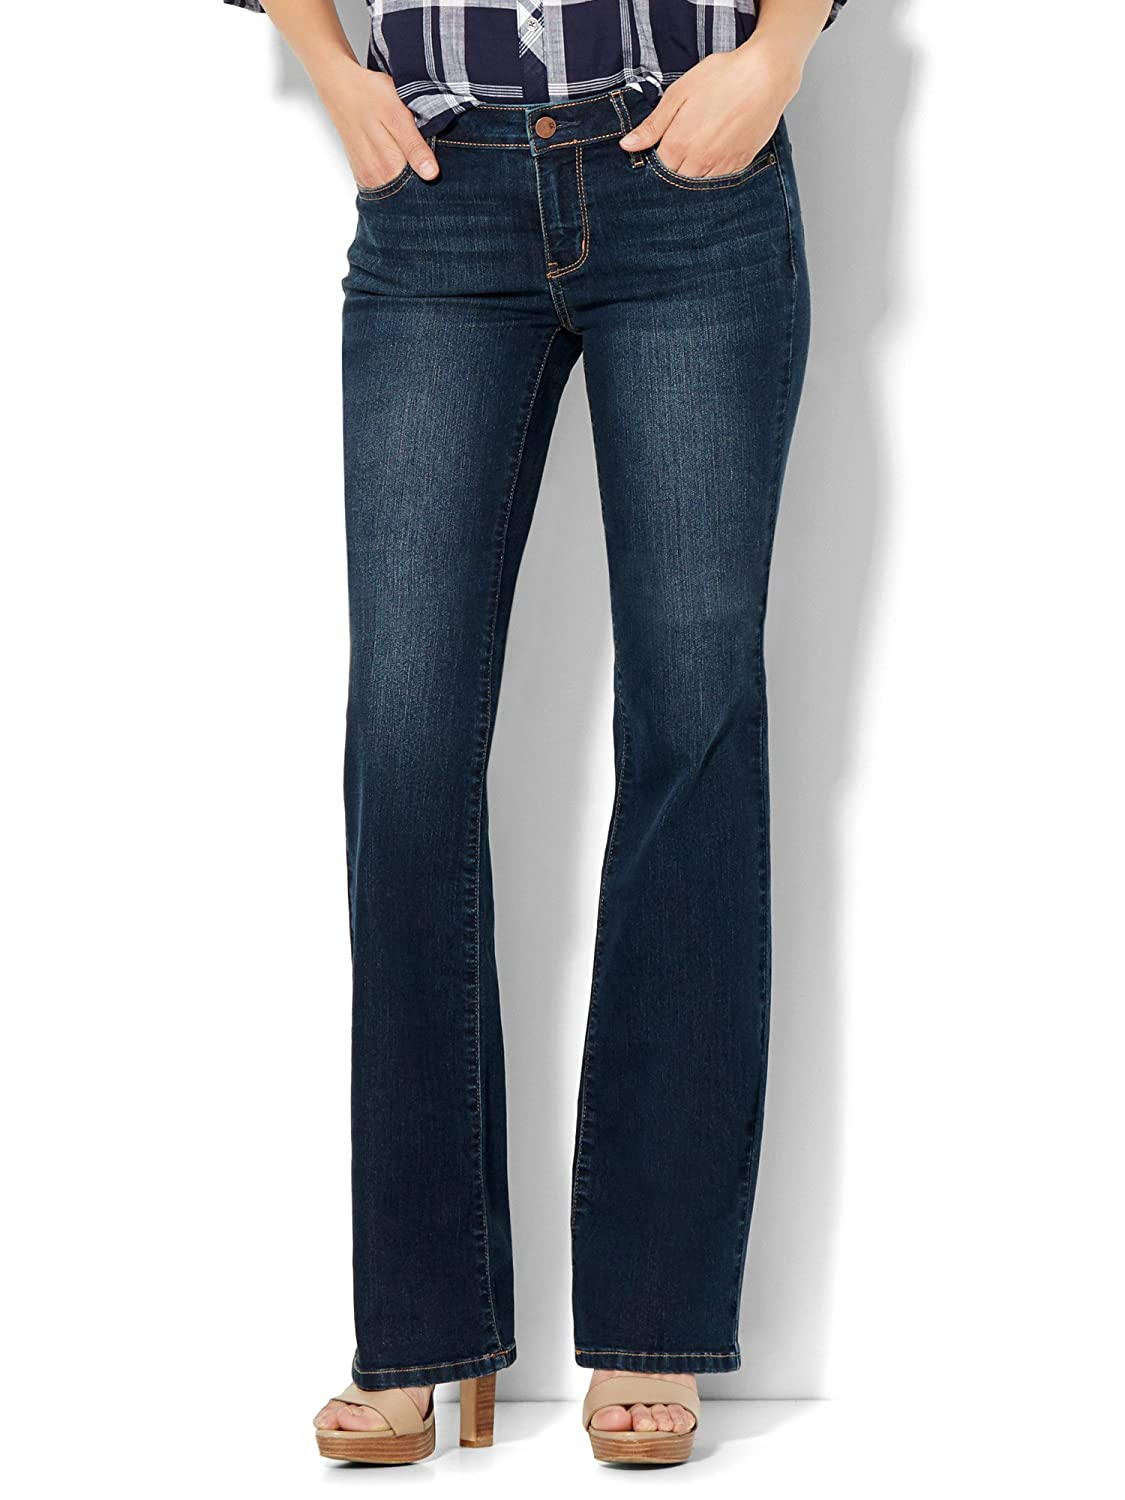 New York & Co. Soho Jeans - Curvy Bootcut - Flawless Blue Wash